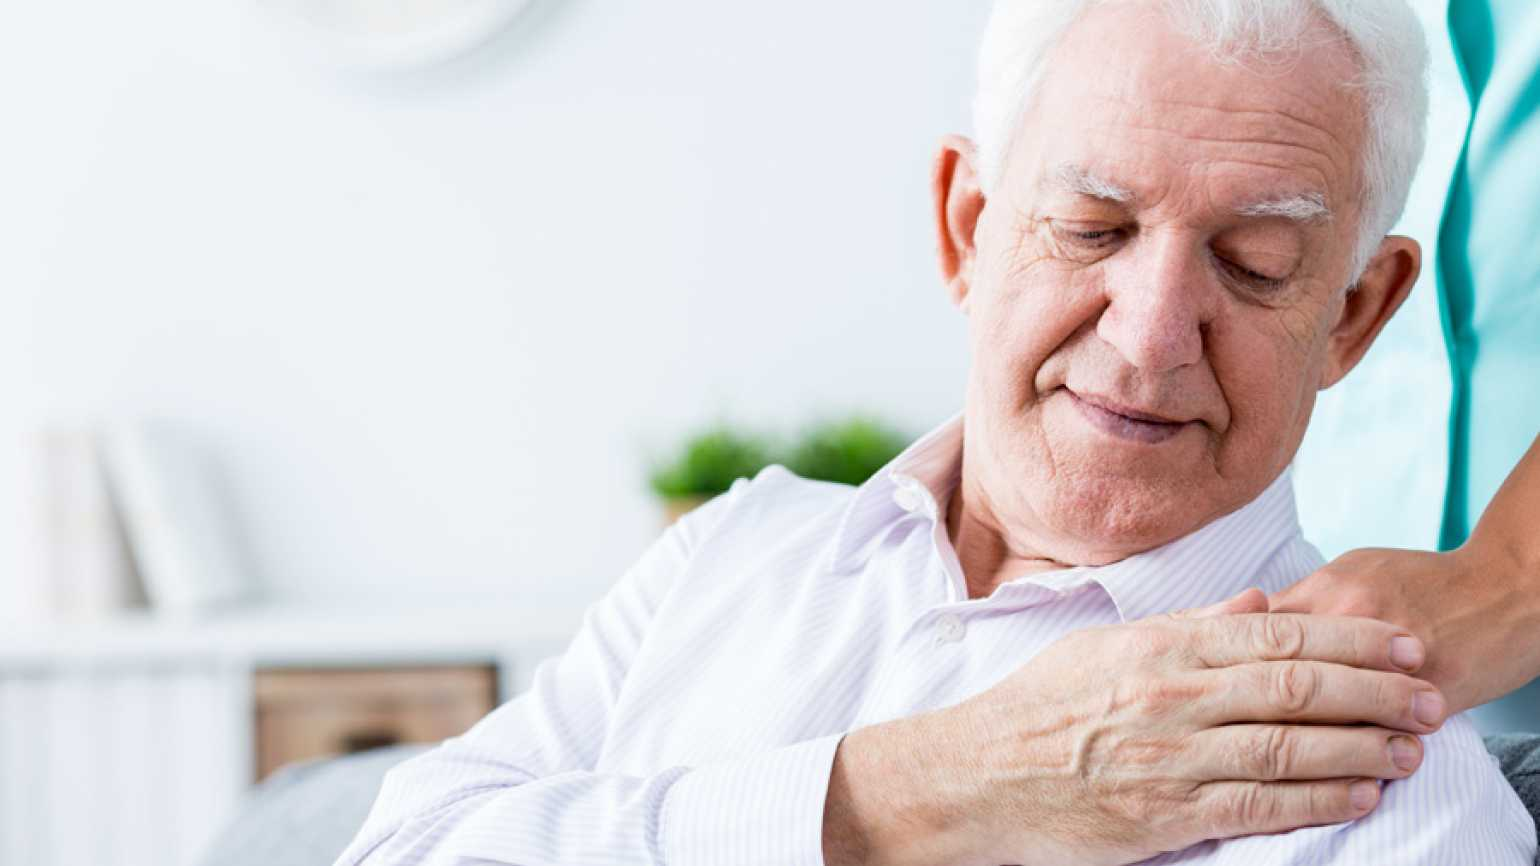 Six Signs Someone with Alzheimer's Might Wander: These Triggers Could Put Individuals At Risk